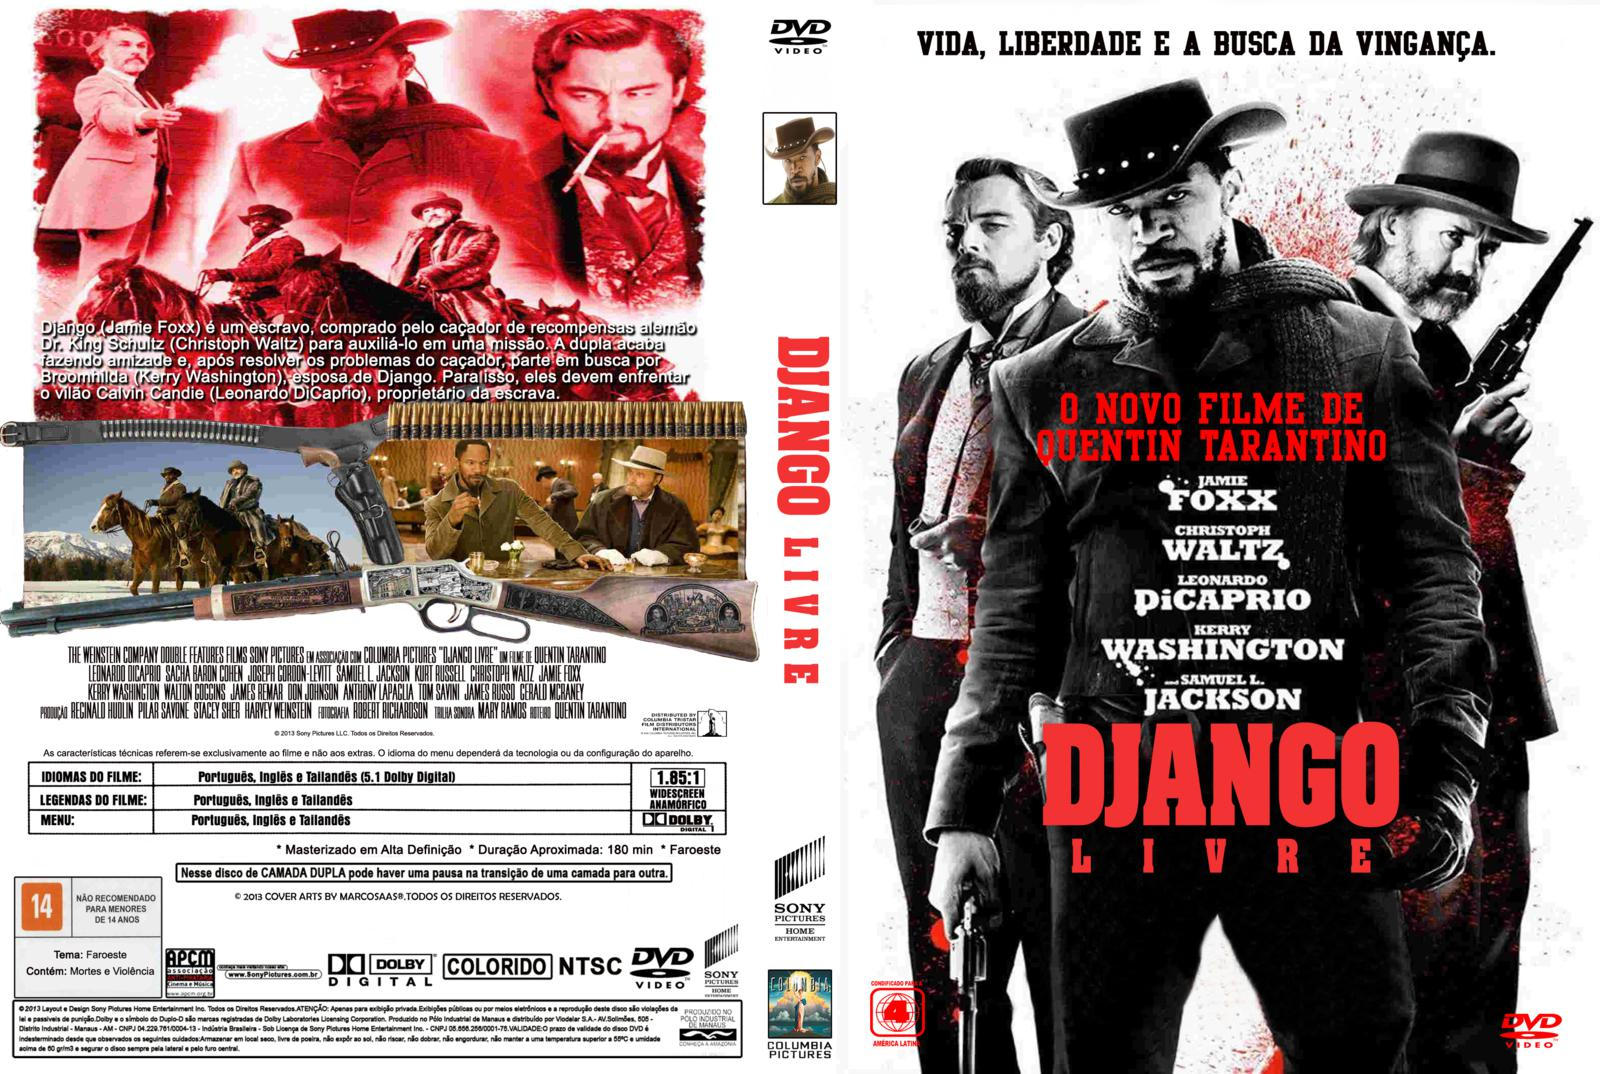 Download Django Livre BDRip XviD Dual Áudio dvd www